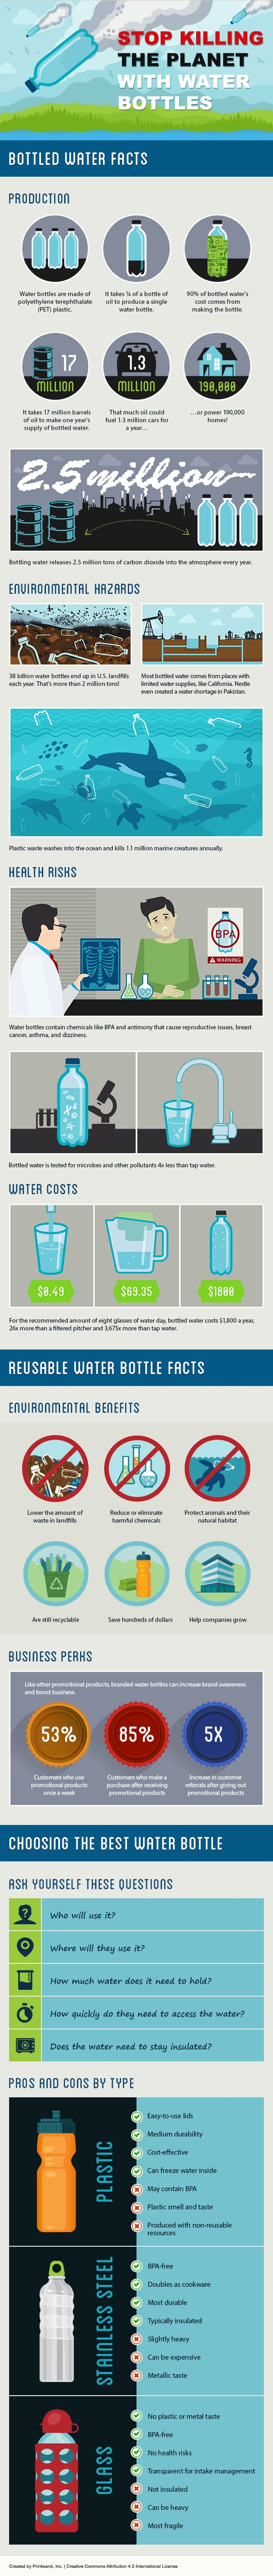 plastic water bottle pollution environmental effects infographic